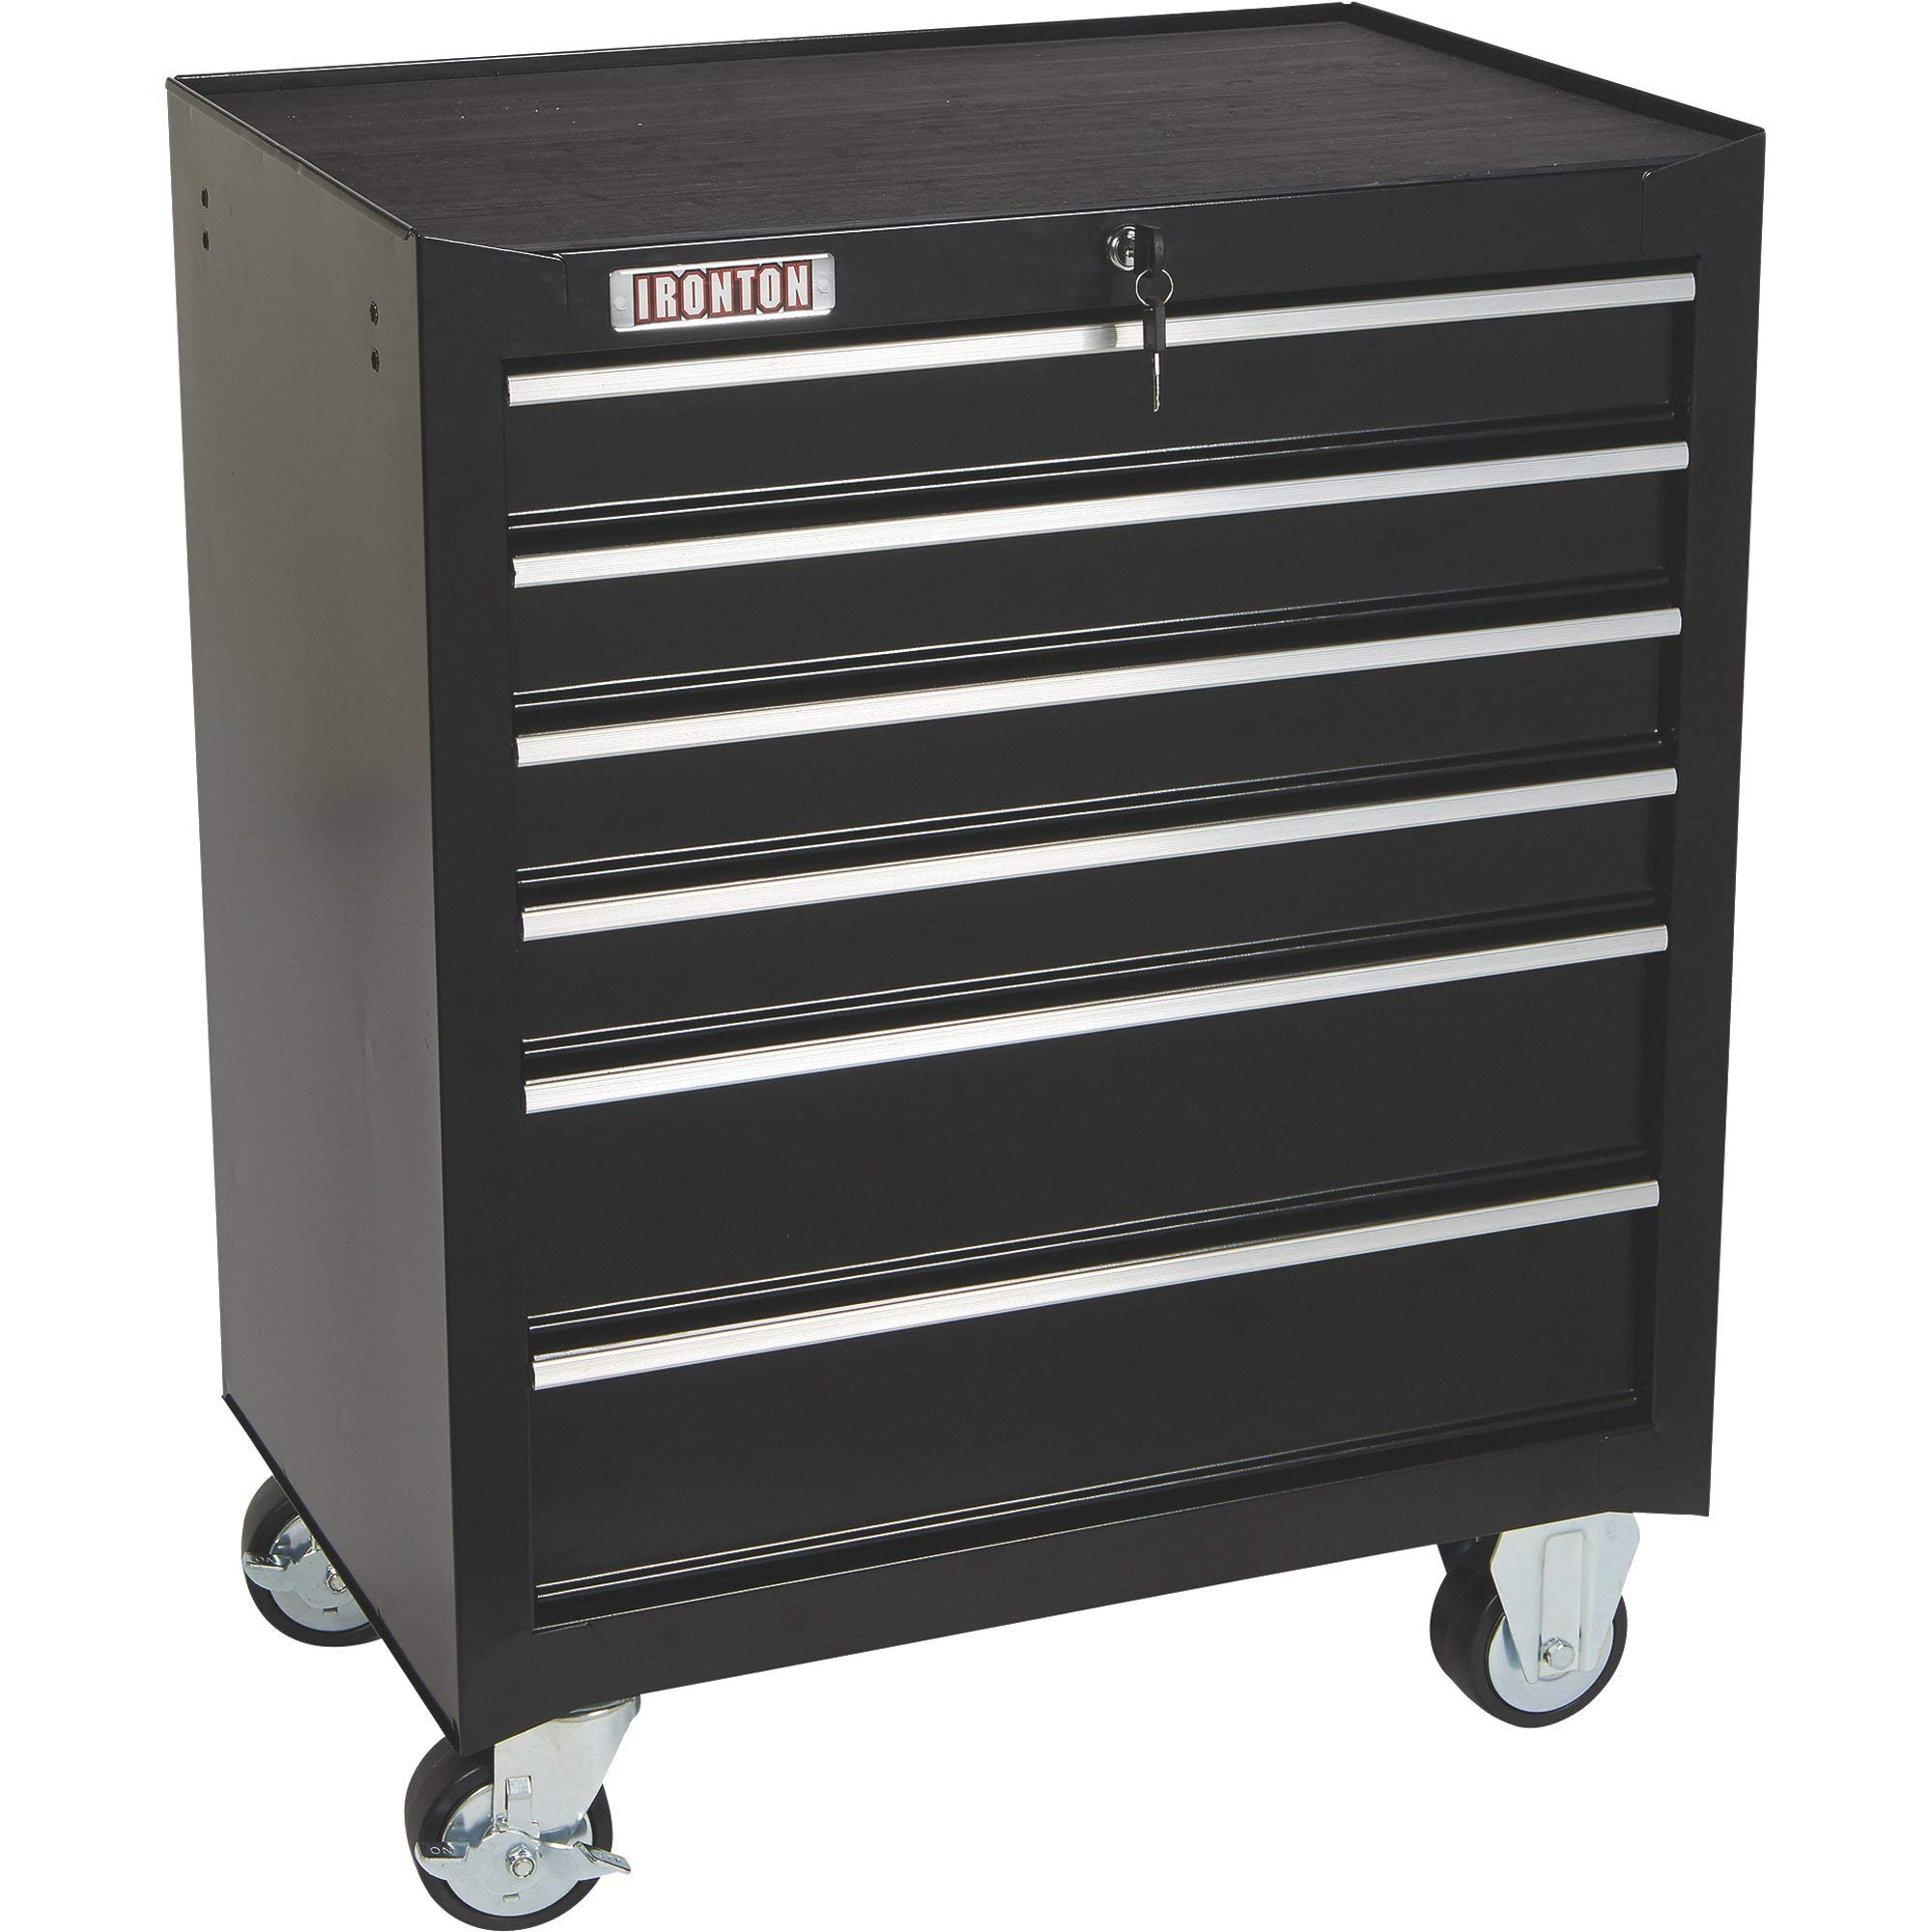 Ironton 26in. 6-Drawer Rolling Tool Chest - 26.75in.W x 18in.D x 33.3in.H